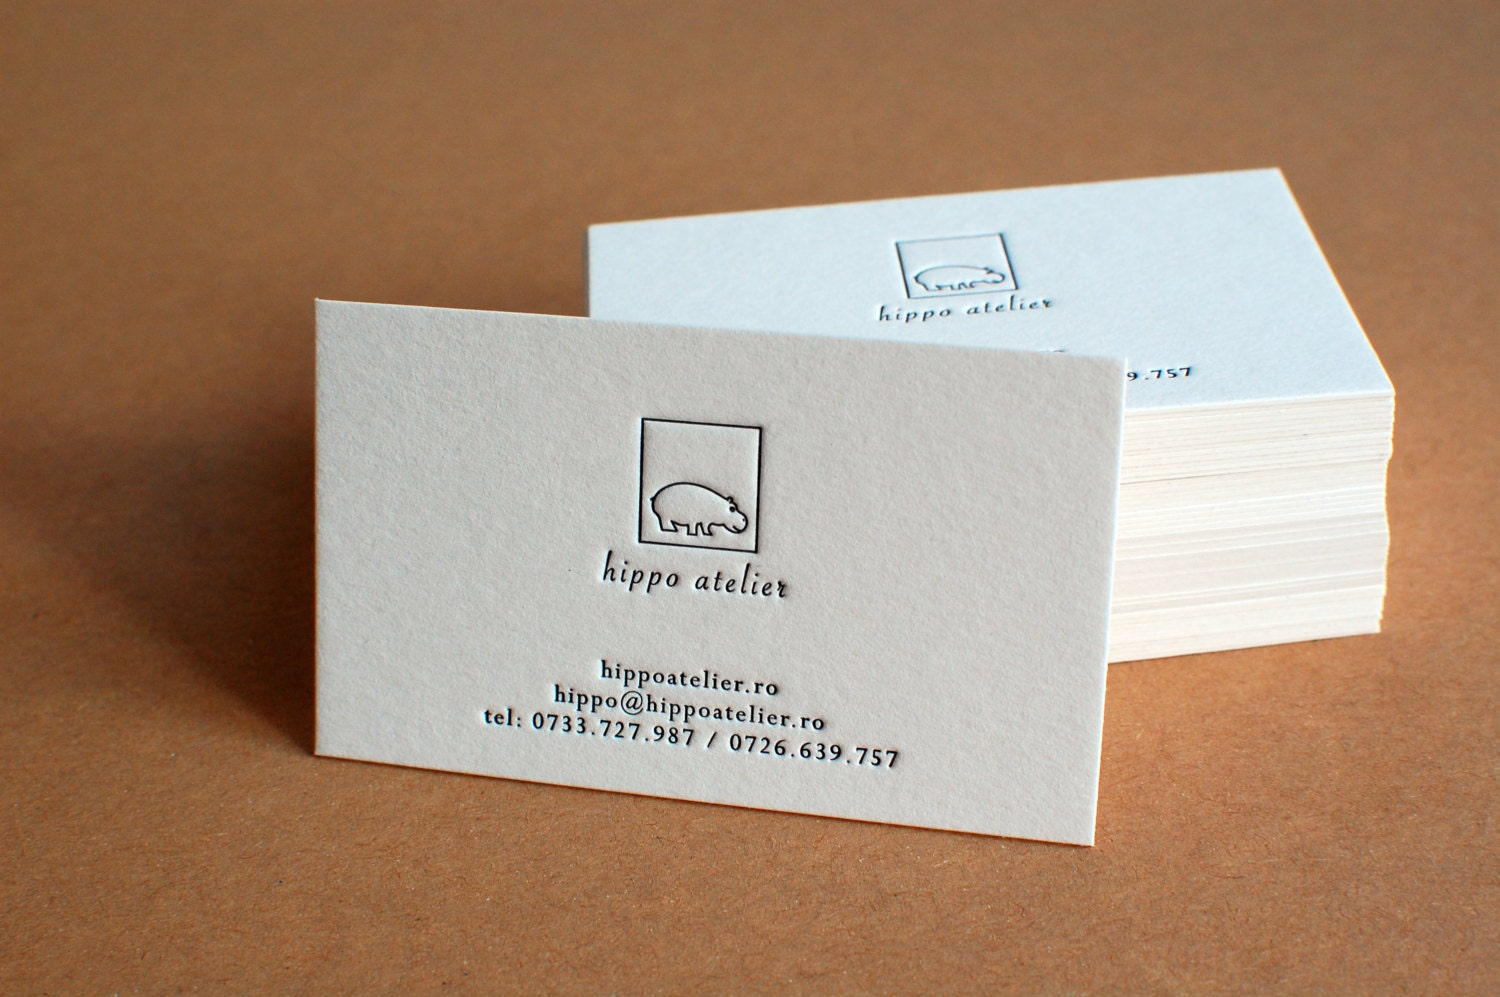 Letterpress business cards etsy image collections card design and outstanding letterpress business cards etsy sketch business card custom letterpress business cards etsy gallery card design colourmoves